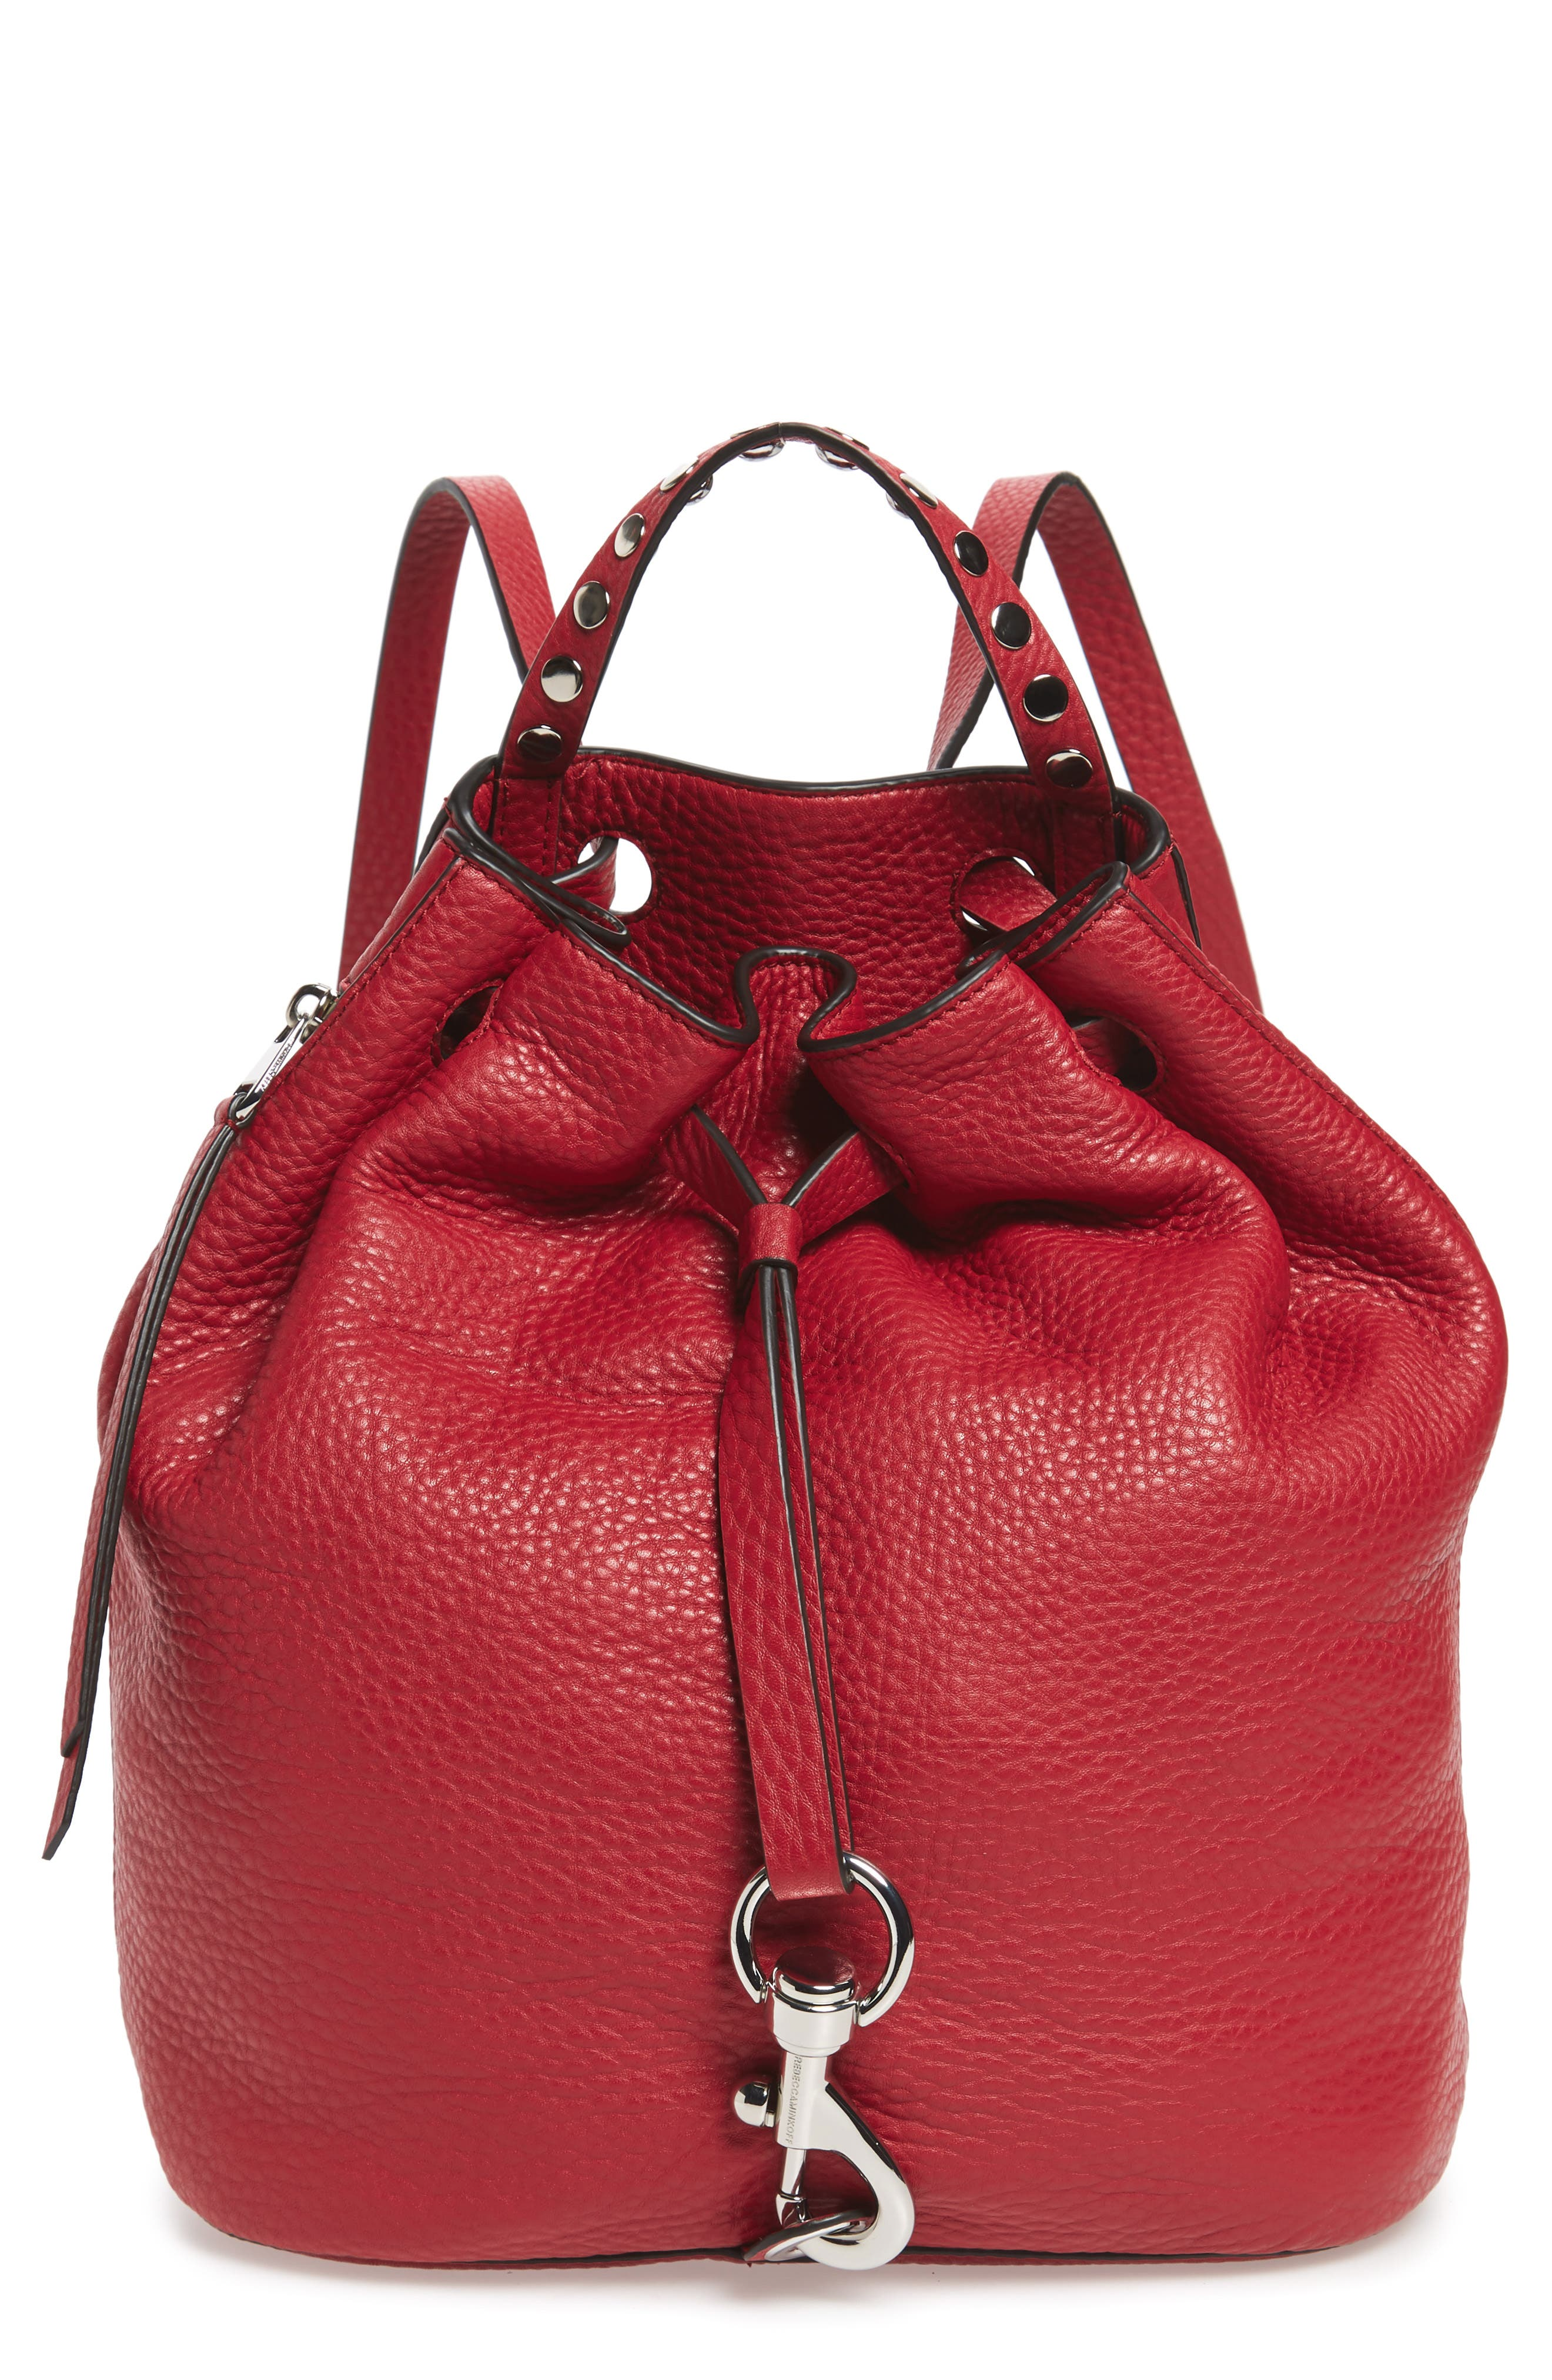 Rebecca Minkoff Blythe Leather Backpack